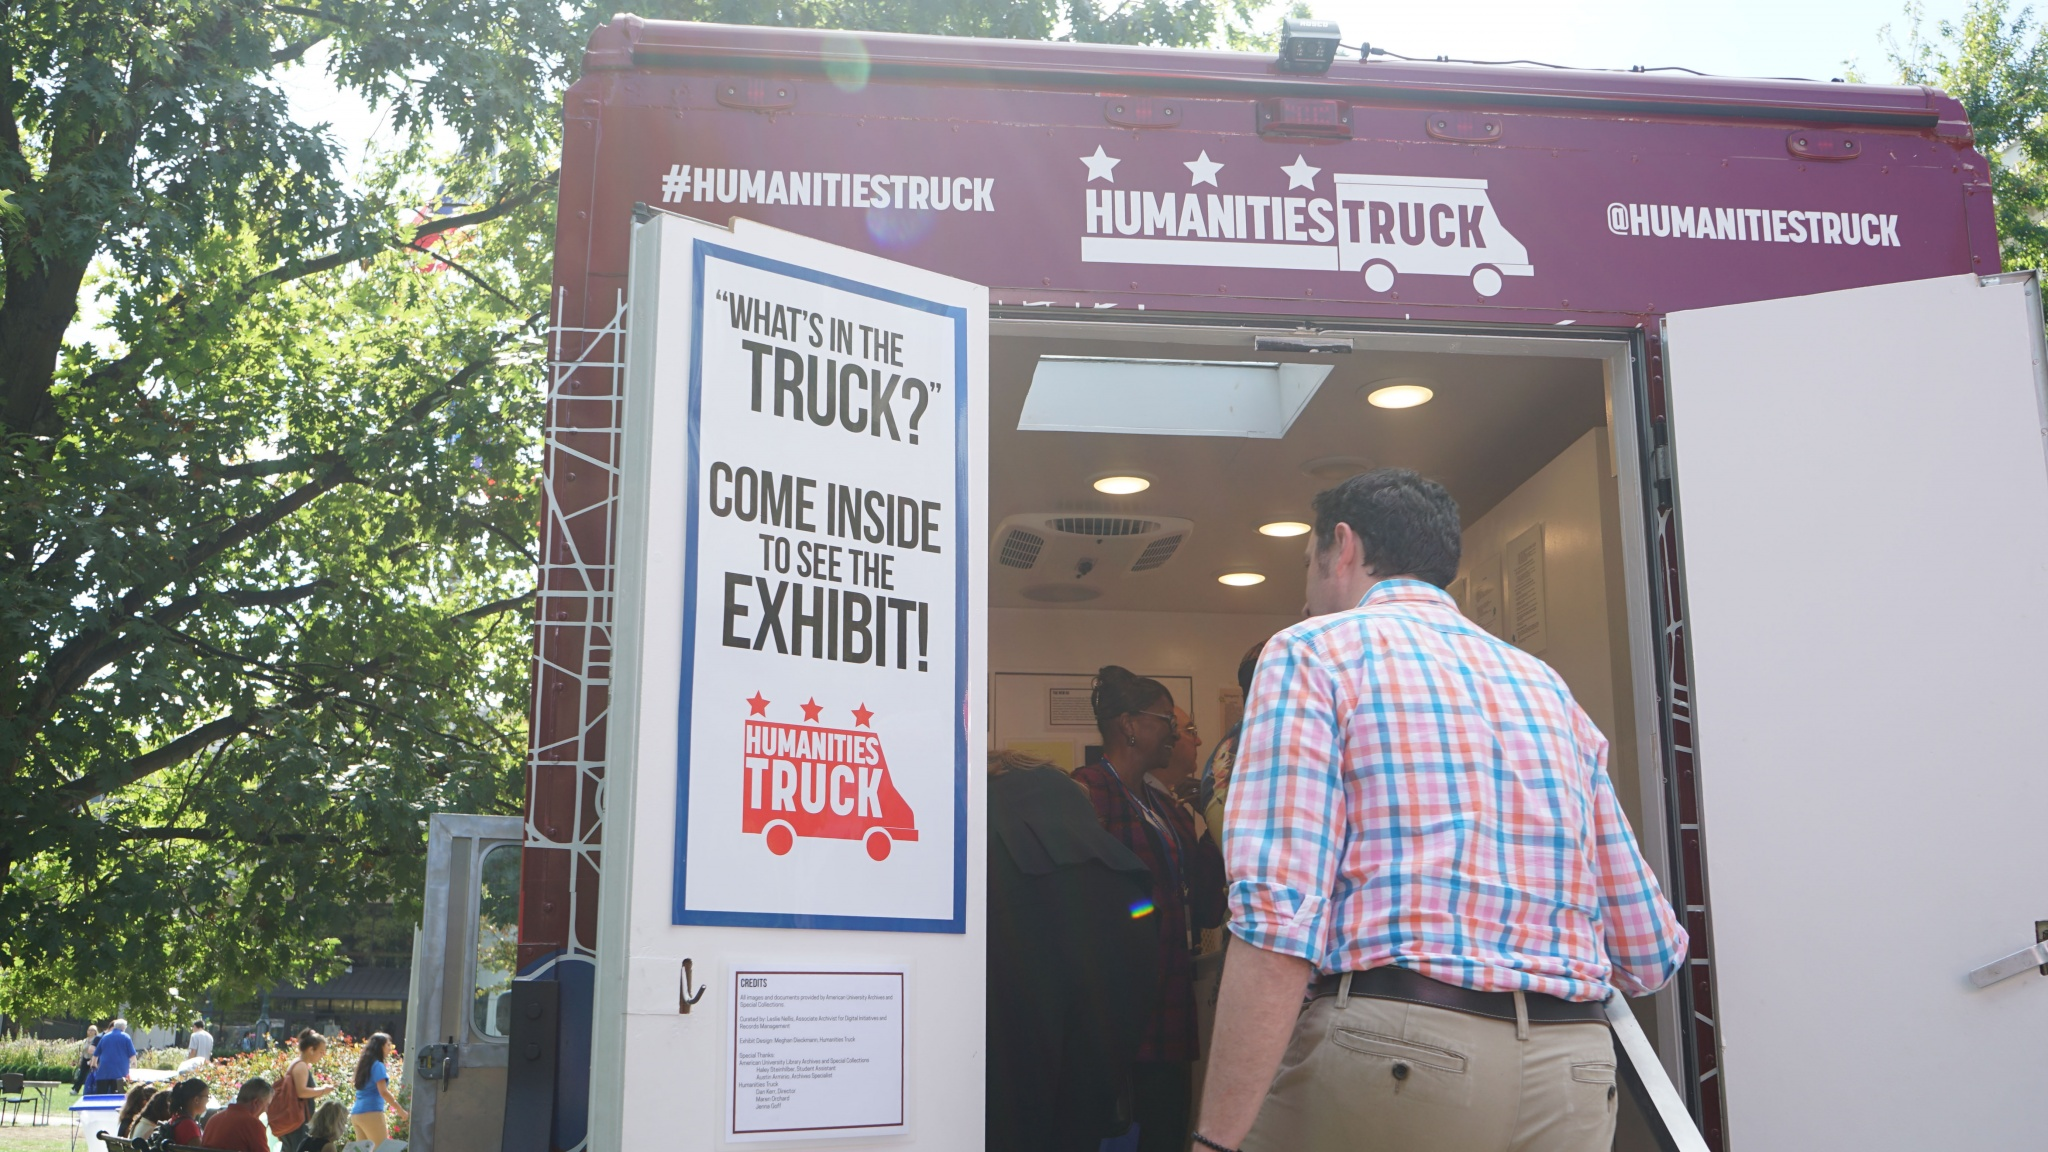 A man enters the packed Humanities Truck exhibit.